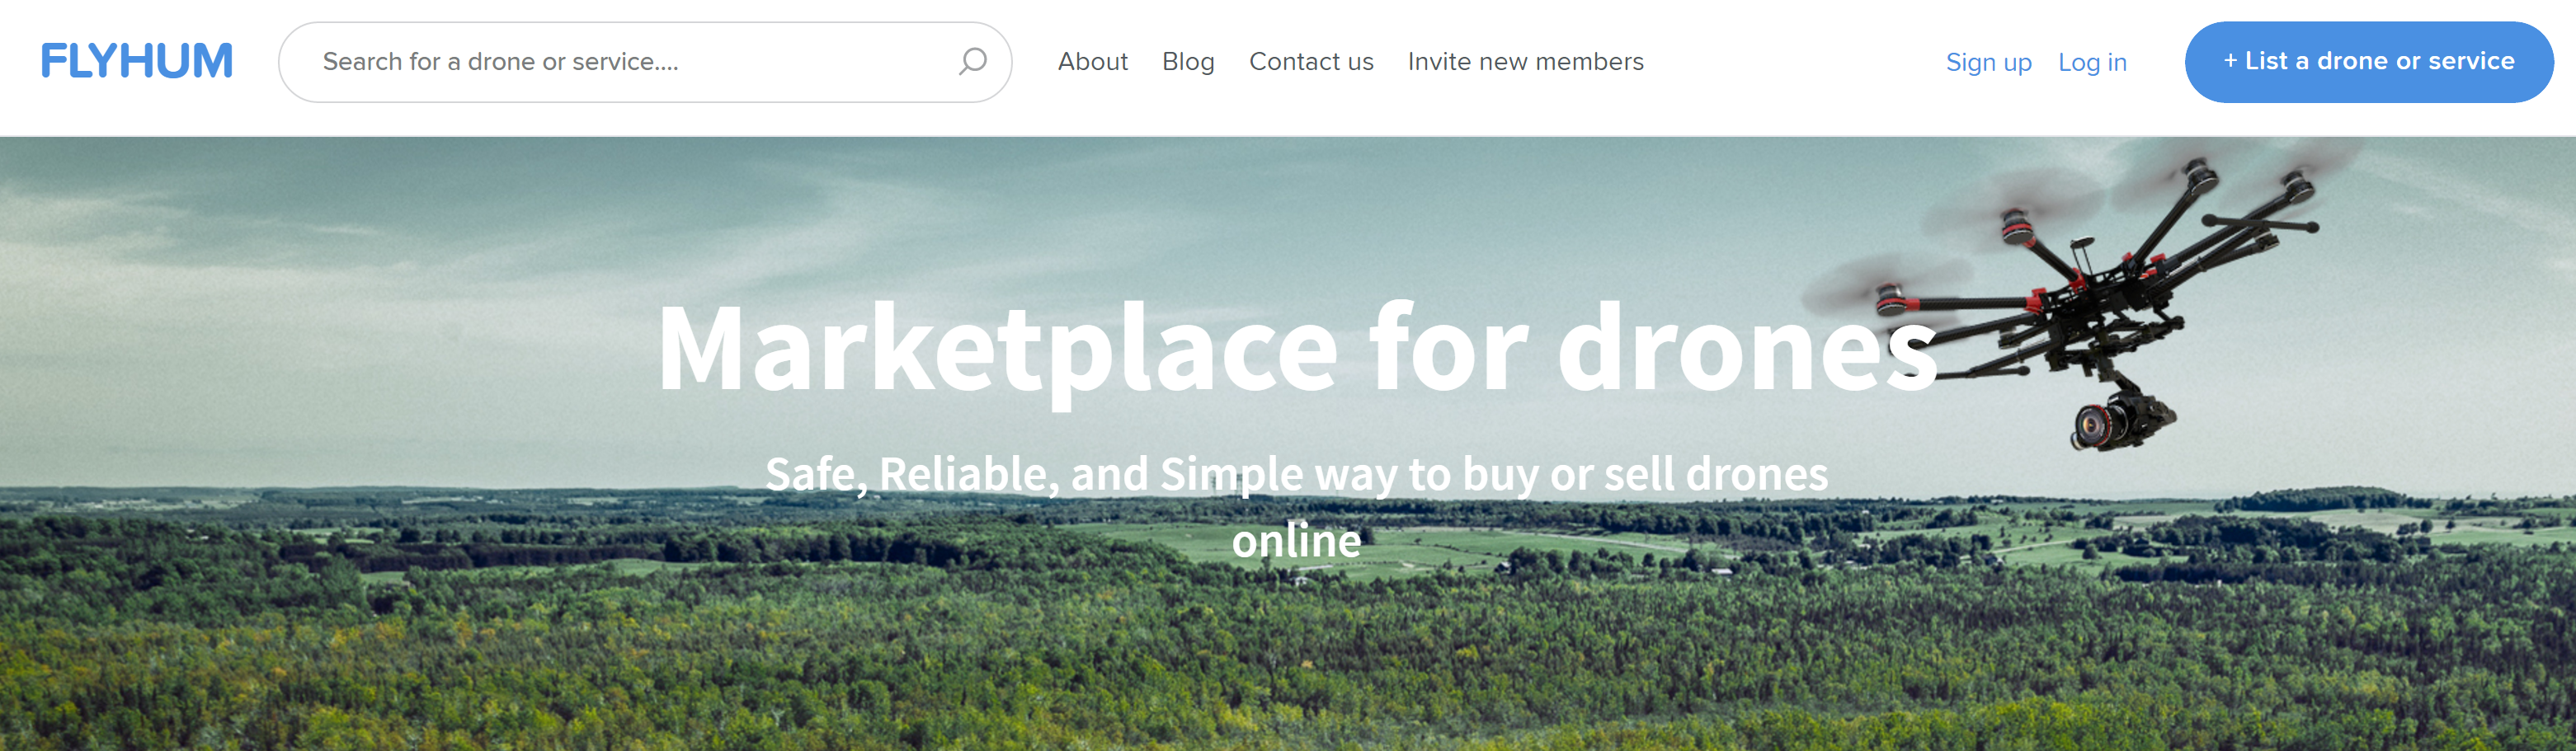 Flyhum is a drone marketplace where pilots can buy and sell used drones.